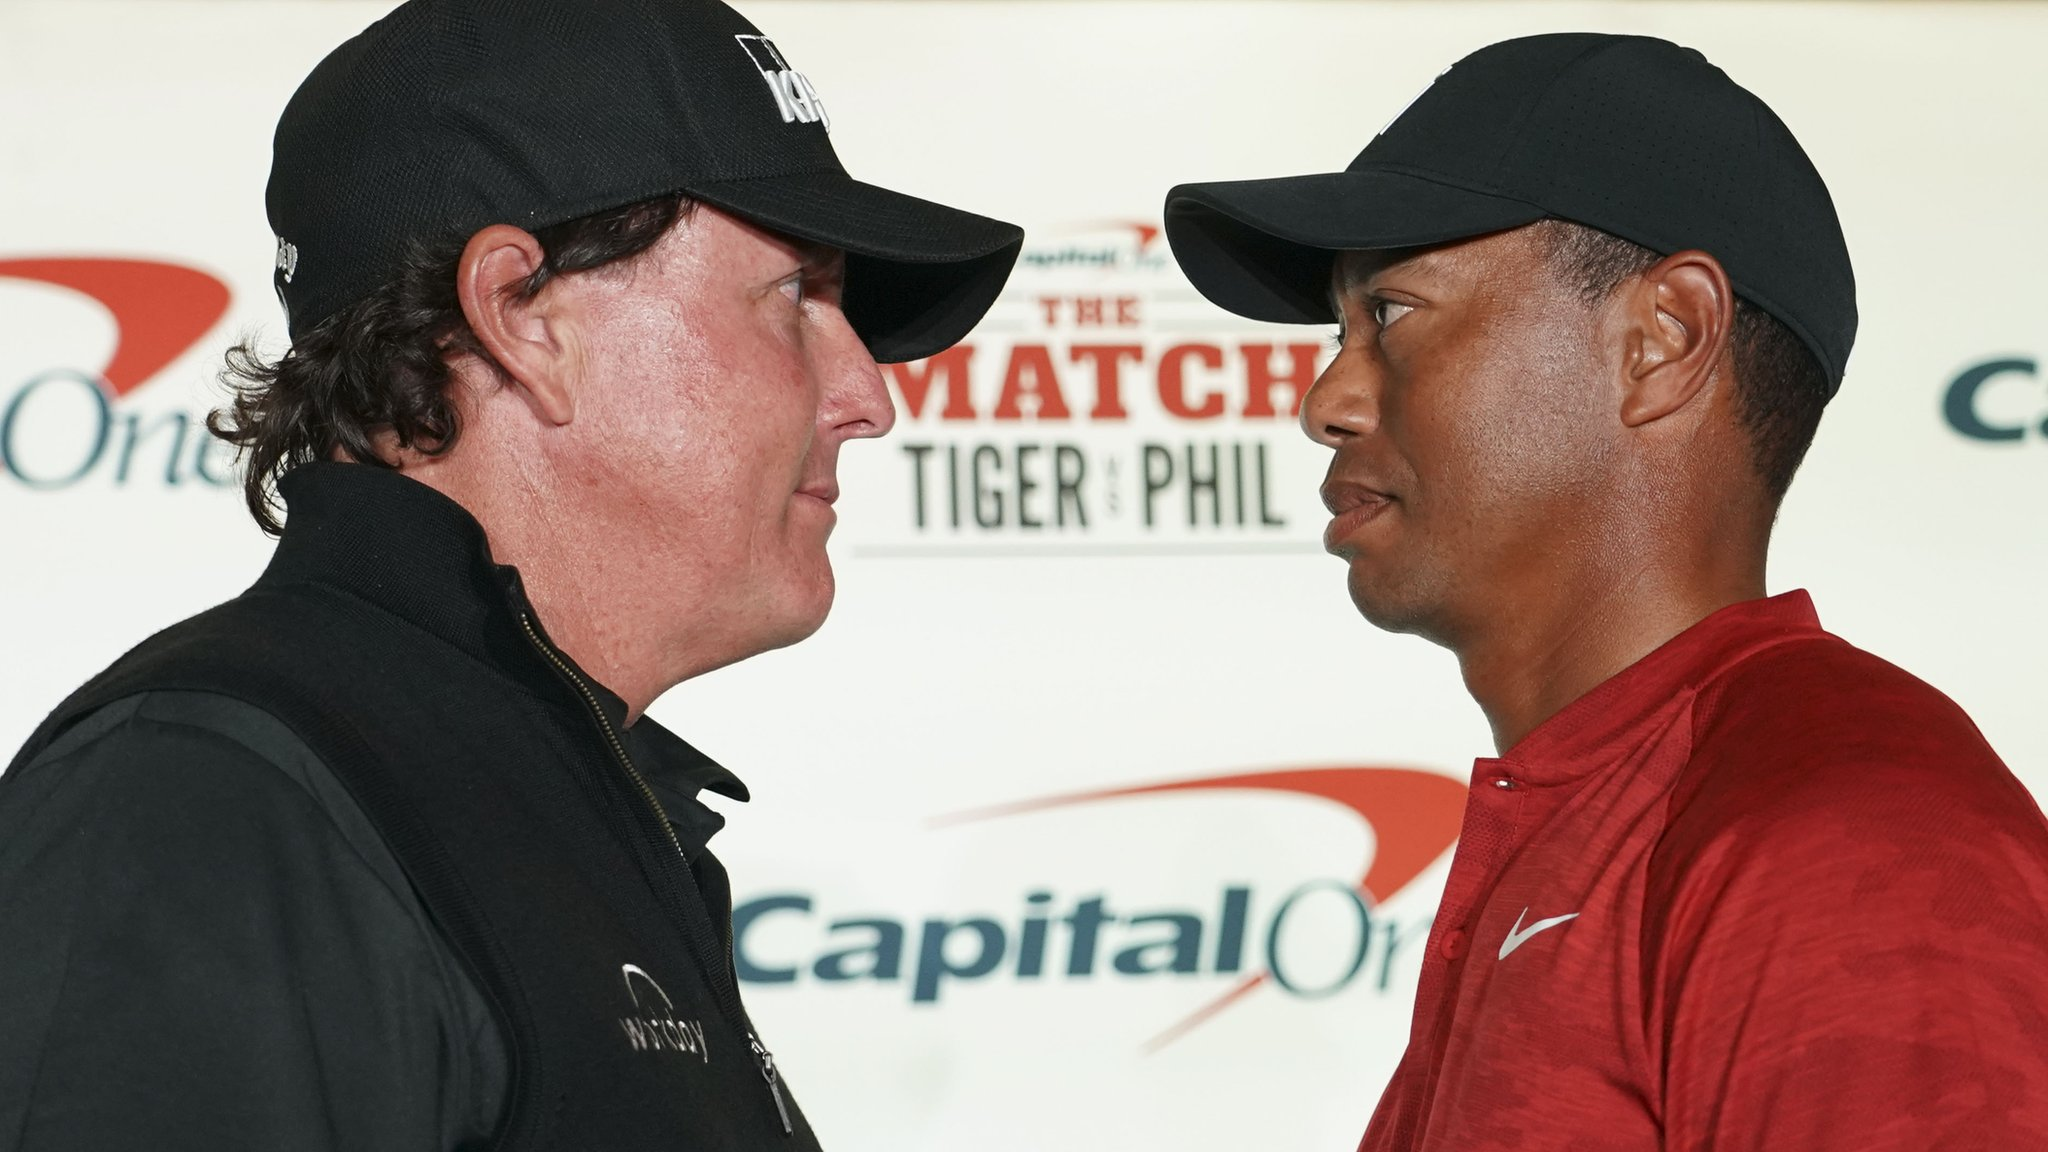 Tiger Woods v Phil Mickelson: Face-off aborted before pay-per-view duel